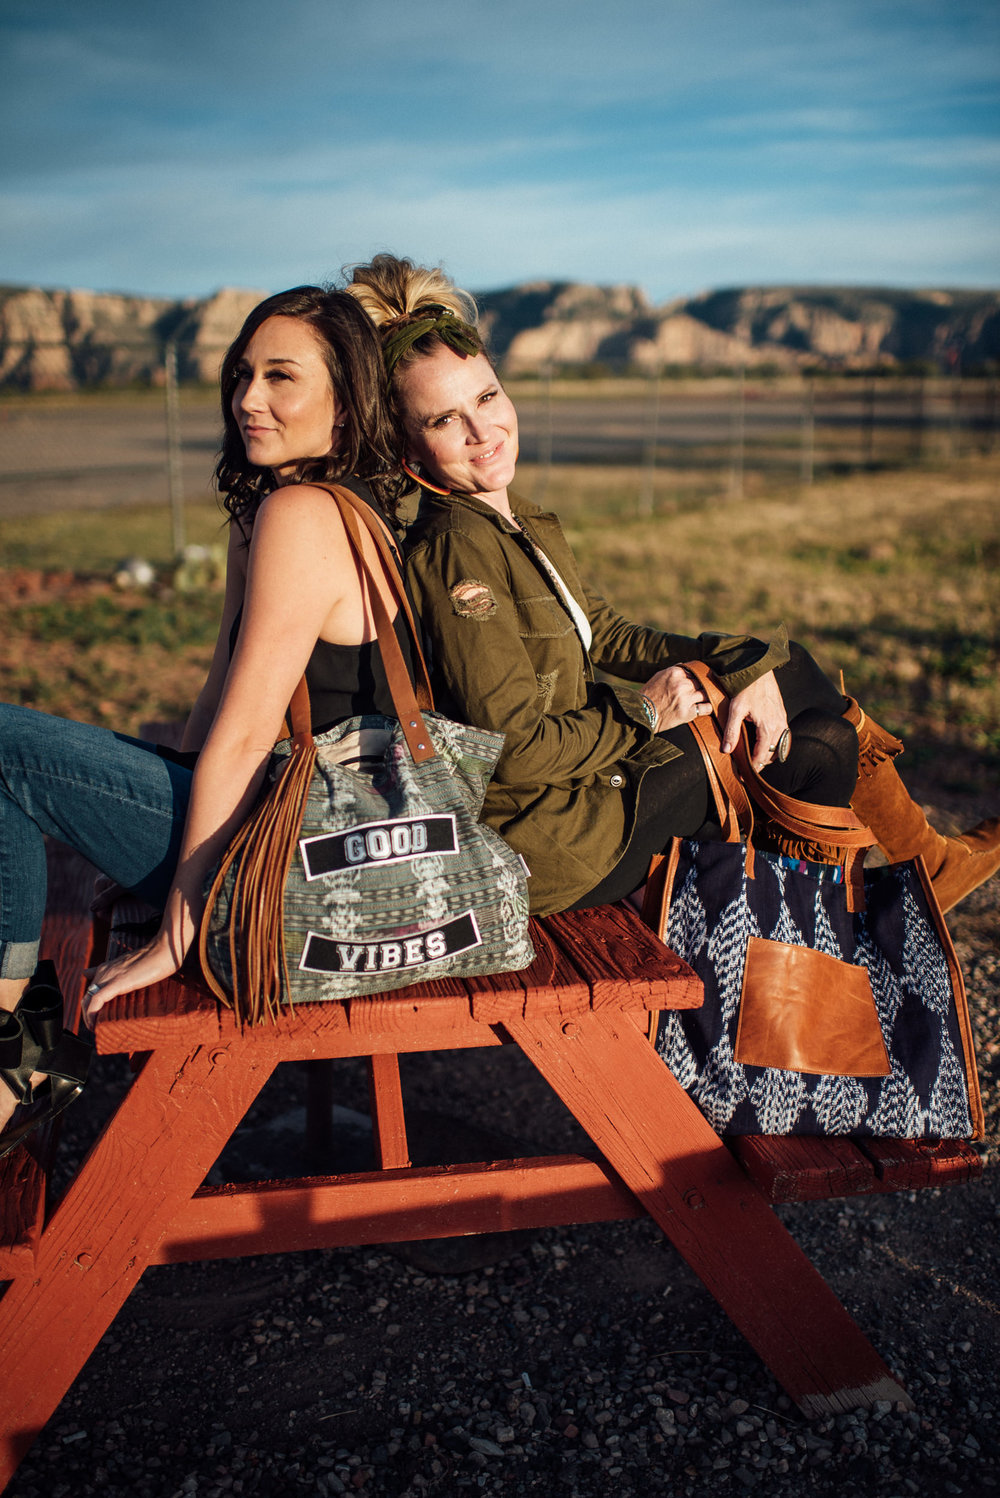 Arizona-Boho-Wedding-Photographer-Handbags-31.jpg